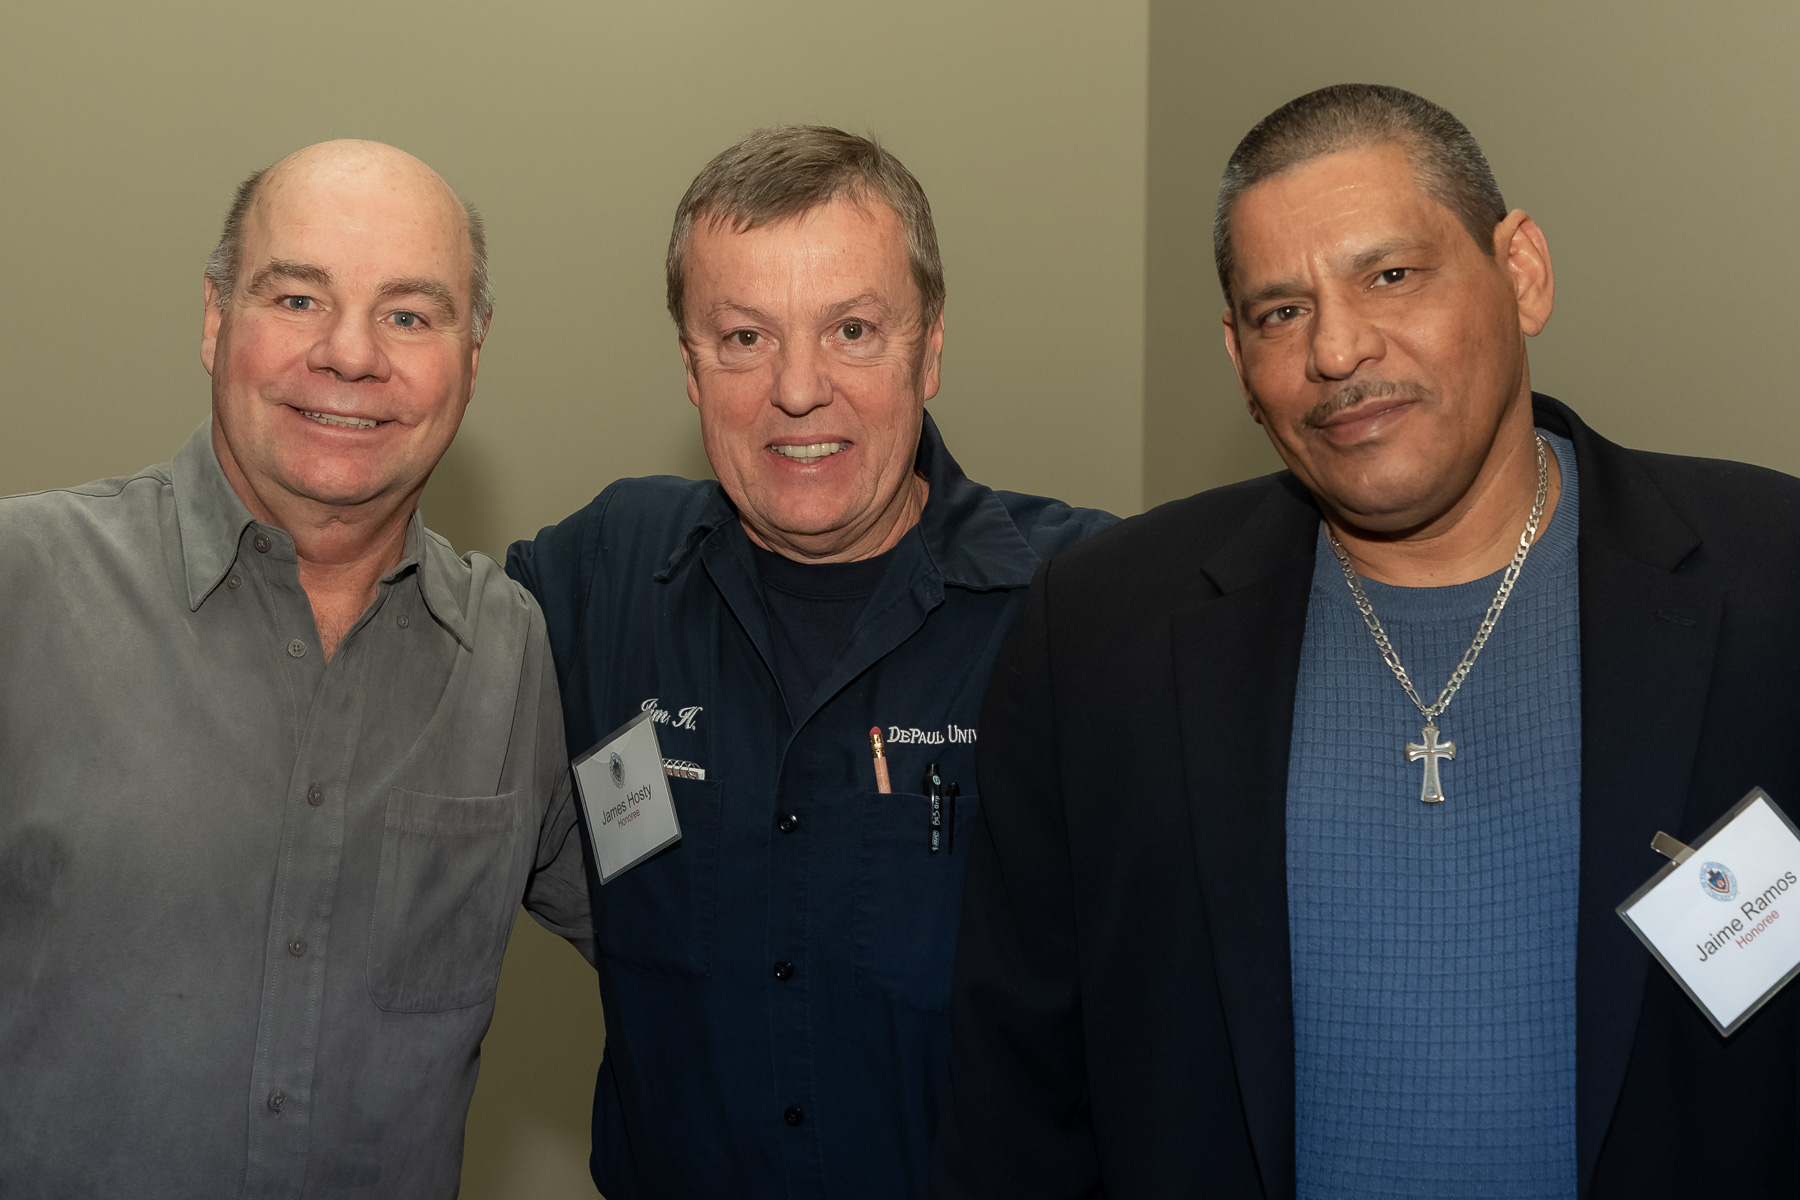 Left to right, Walter Rabenda, James Hosty, and Jaime Ramos, staff in Facility Operations, as DePaul University faculty and staff members are honored for their 25 years of service during a luncheon, Tuesday, Nov. 13, 2018, at the Lincoln Park Student Center. The honorees were recognized by A. Gabriel Esteban, Ph.D., president of DePaul, and will have their names added to plaques located on the Loop and Lincoln Park Campuses. (DePaul University/Jeff Carrion)